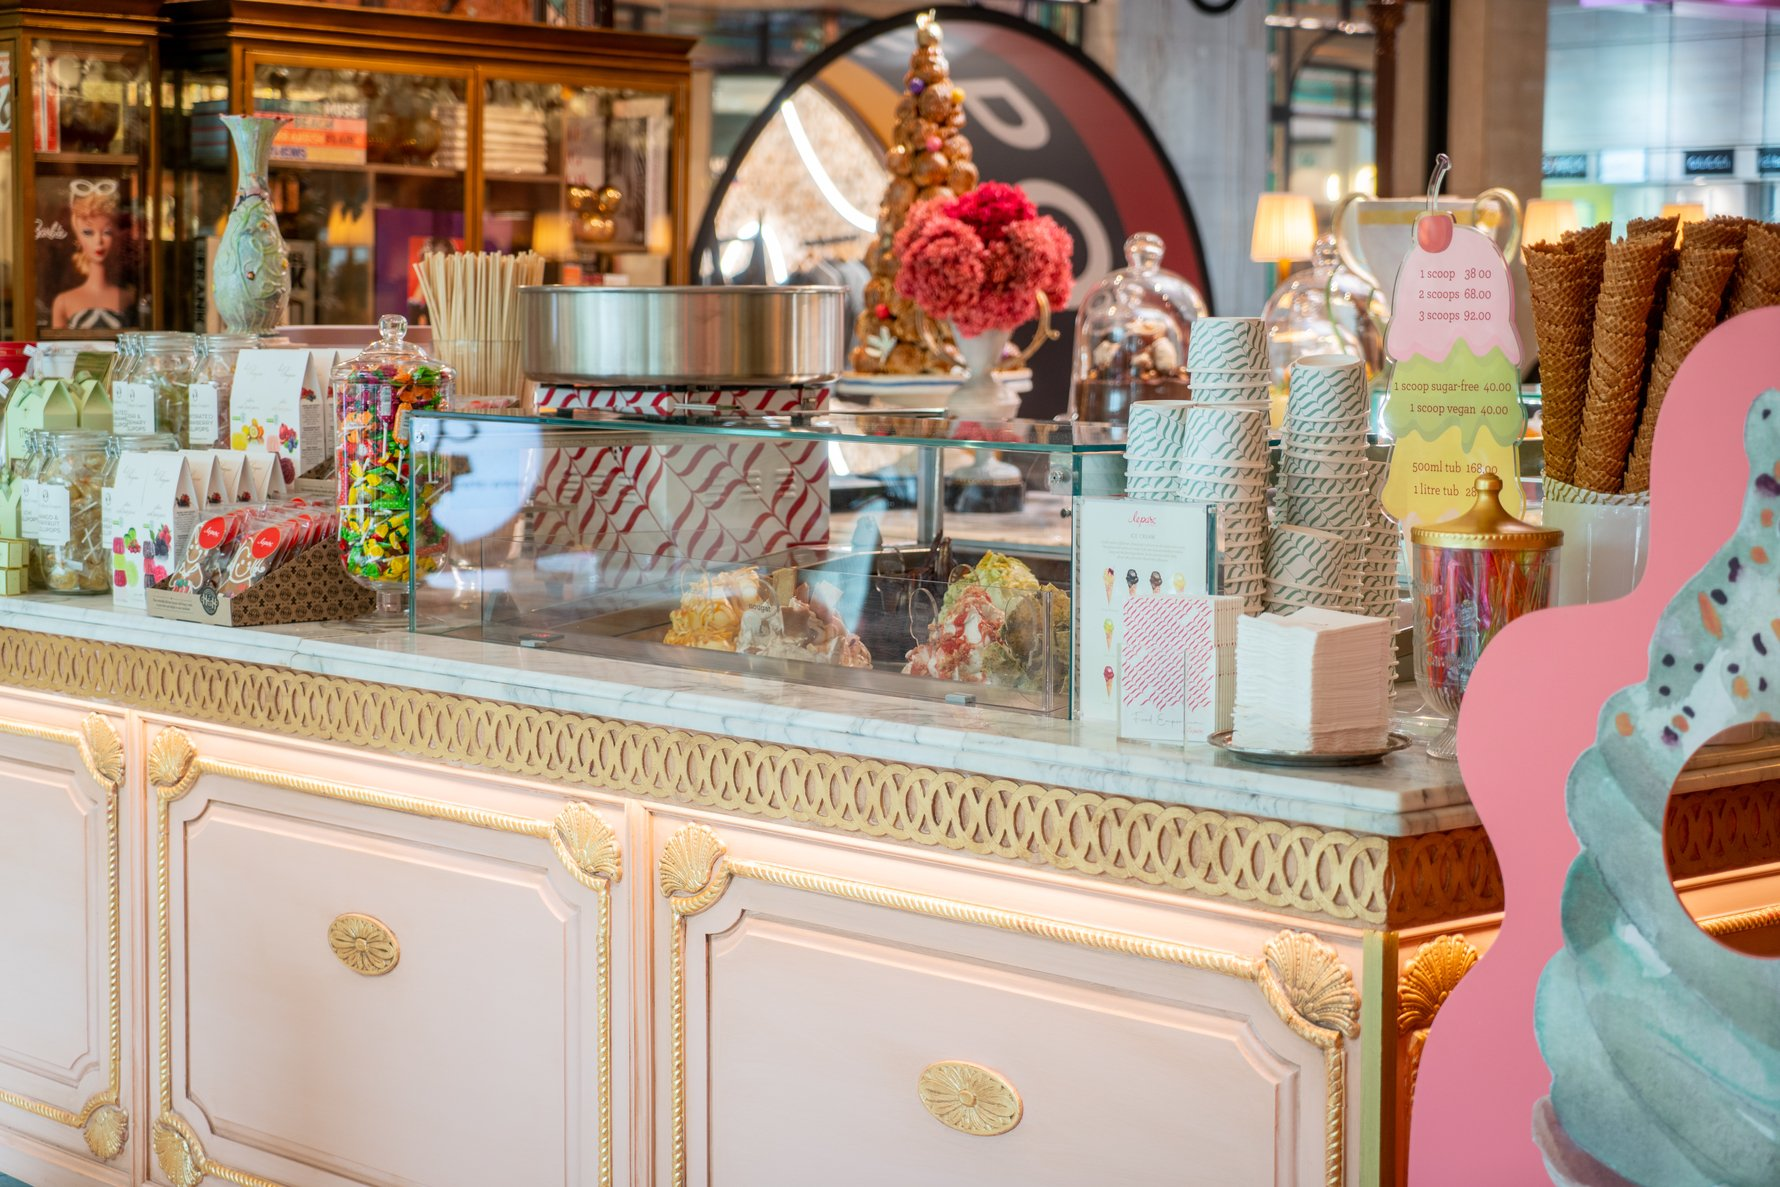 Candy for kids and adults at Le Parc by tashas